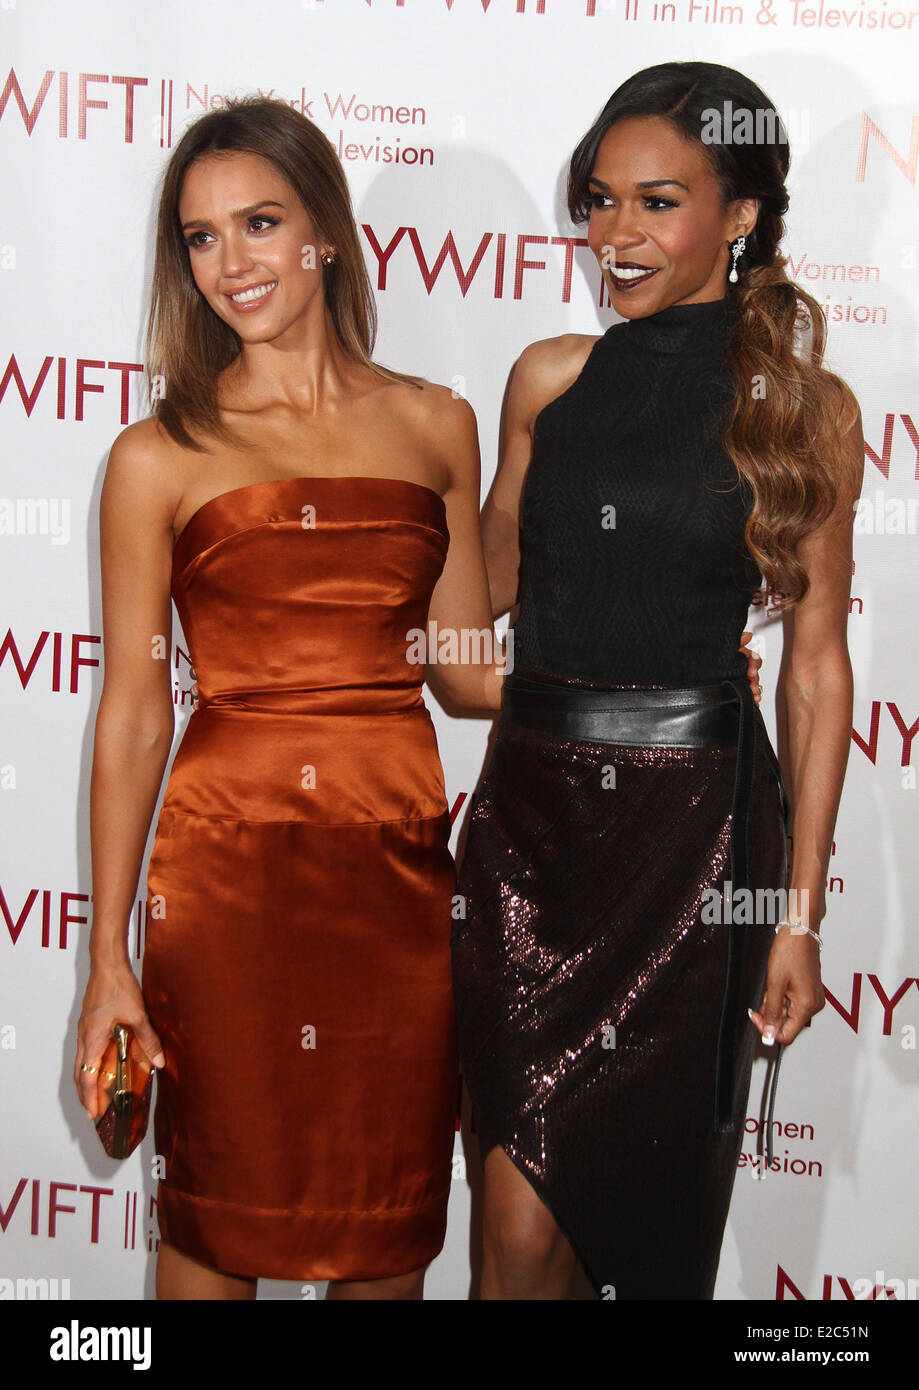 At the fitbit ipo celebration at new york stock exchange on thursday - New York New York Usa 18th June 2014 Actress Jessica Alba And Singer Michelle Williams Attend 2014 New York In Film And Television Gala Held At The